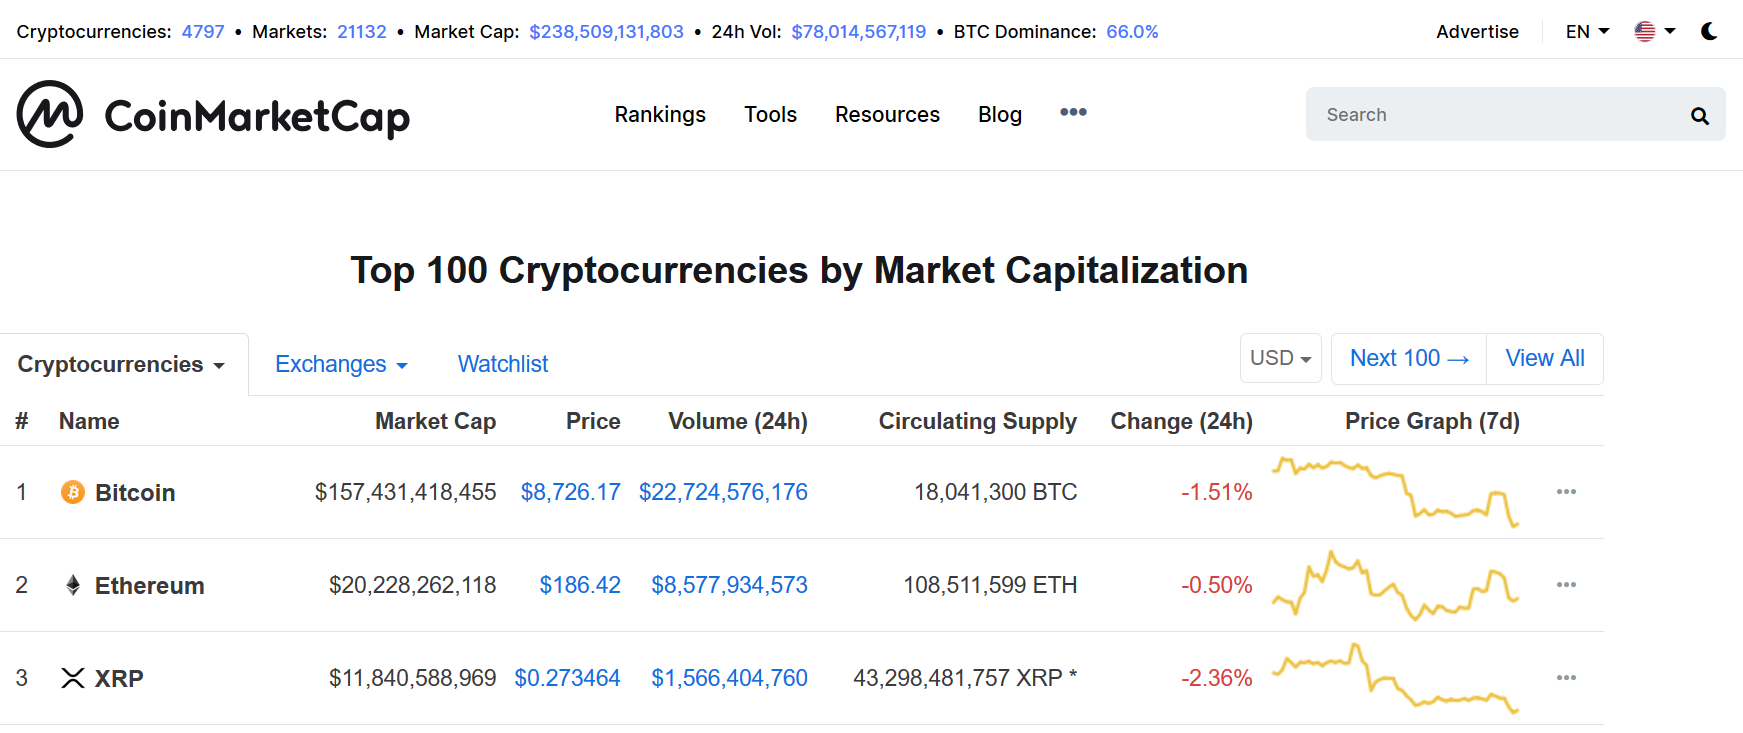 bitcoin is the number one cryptocurrency